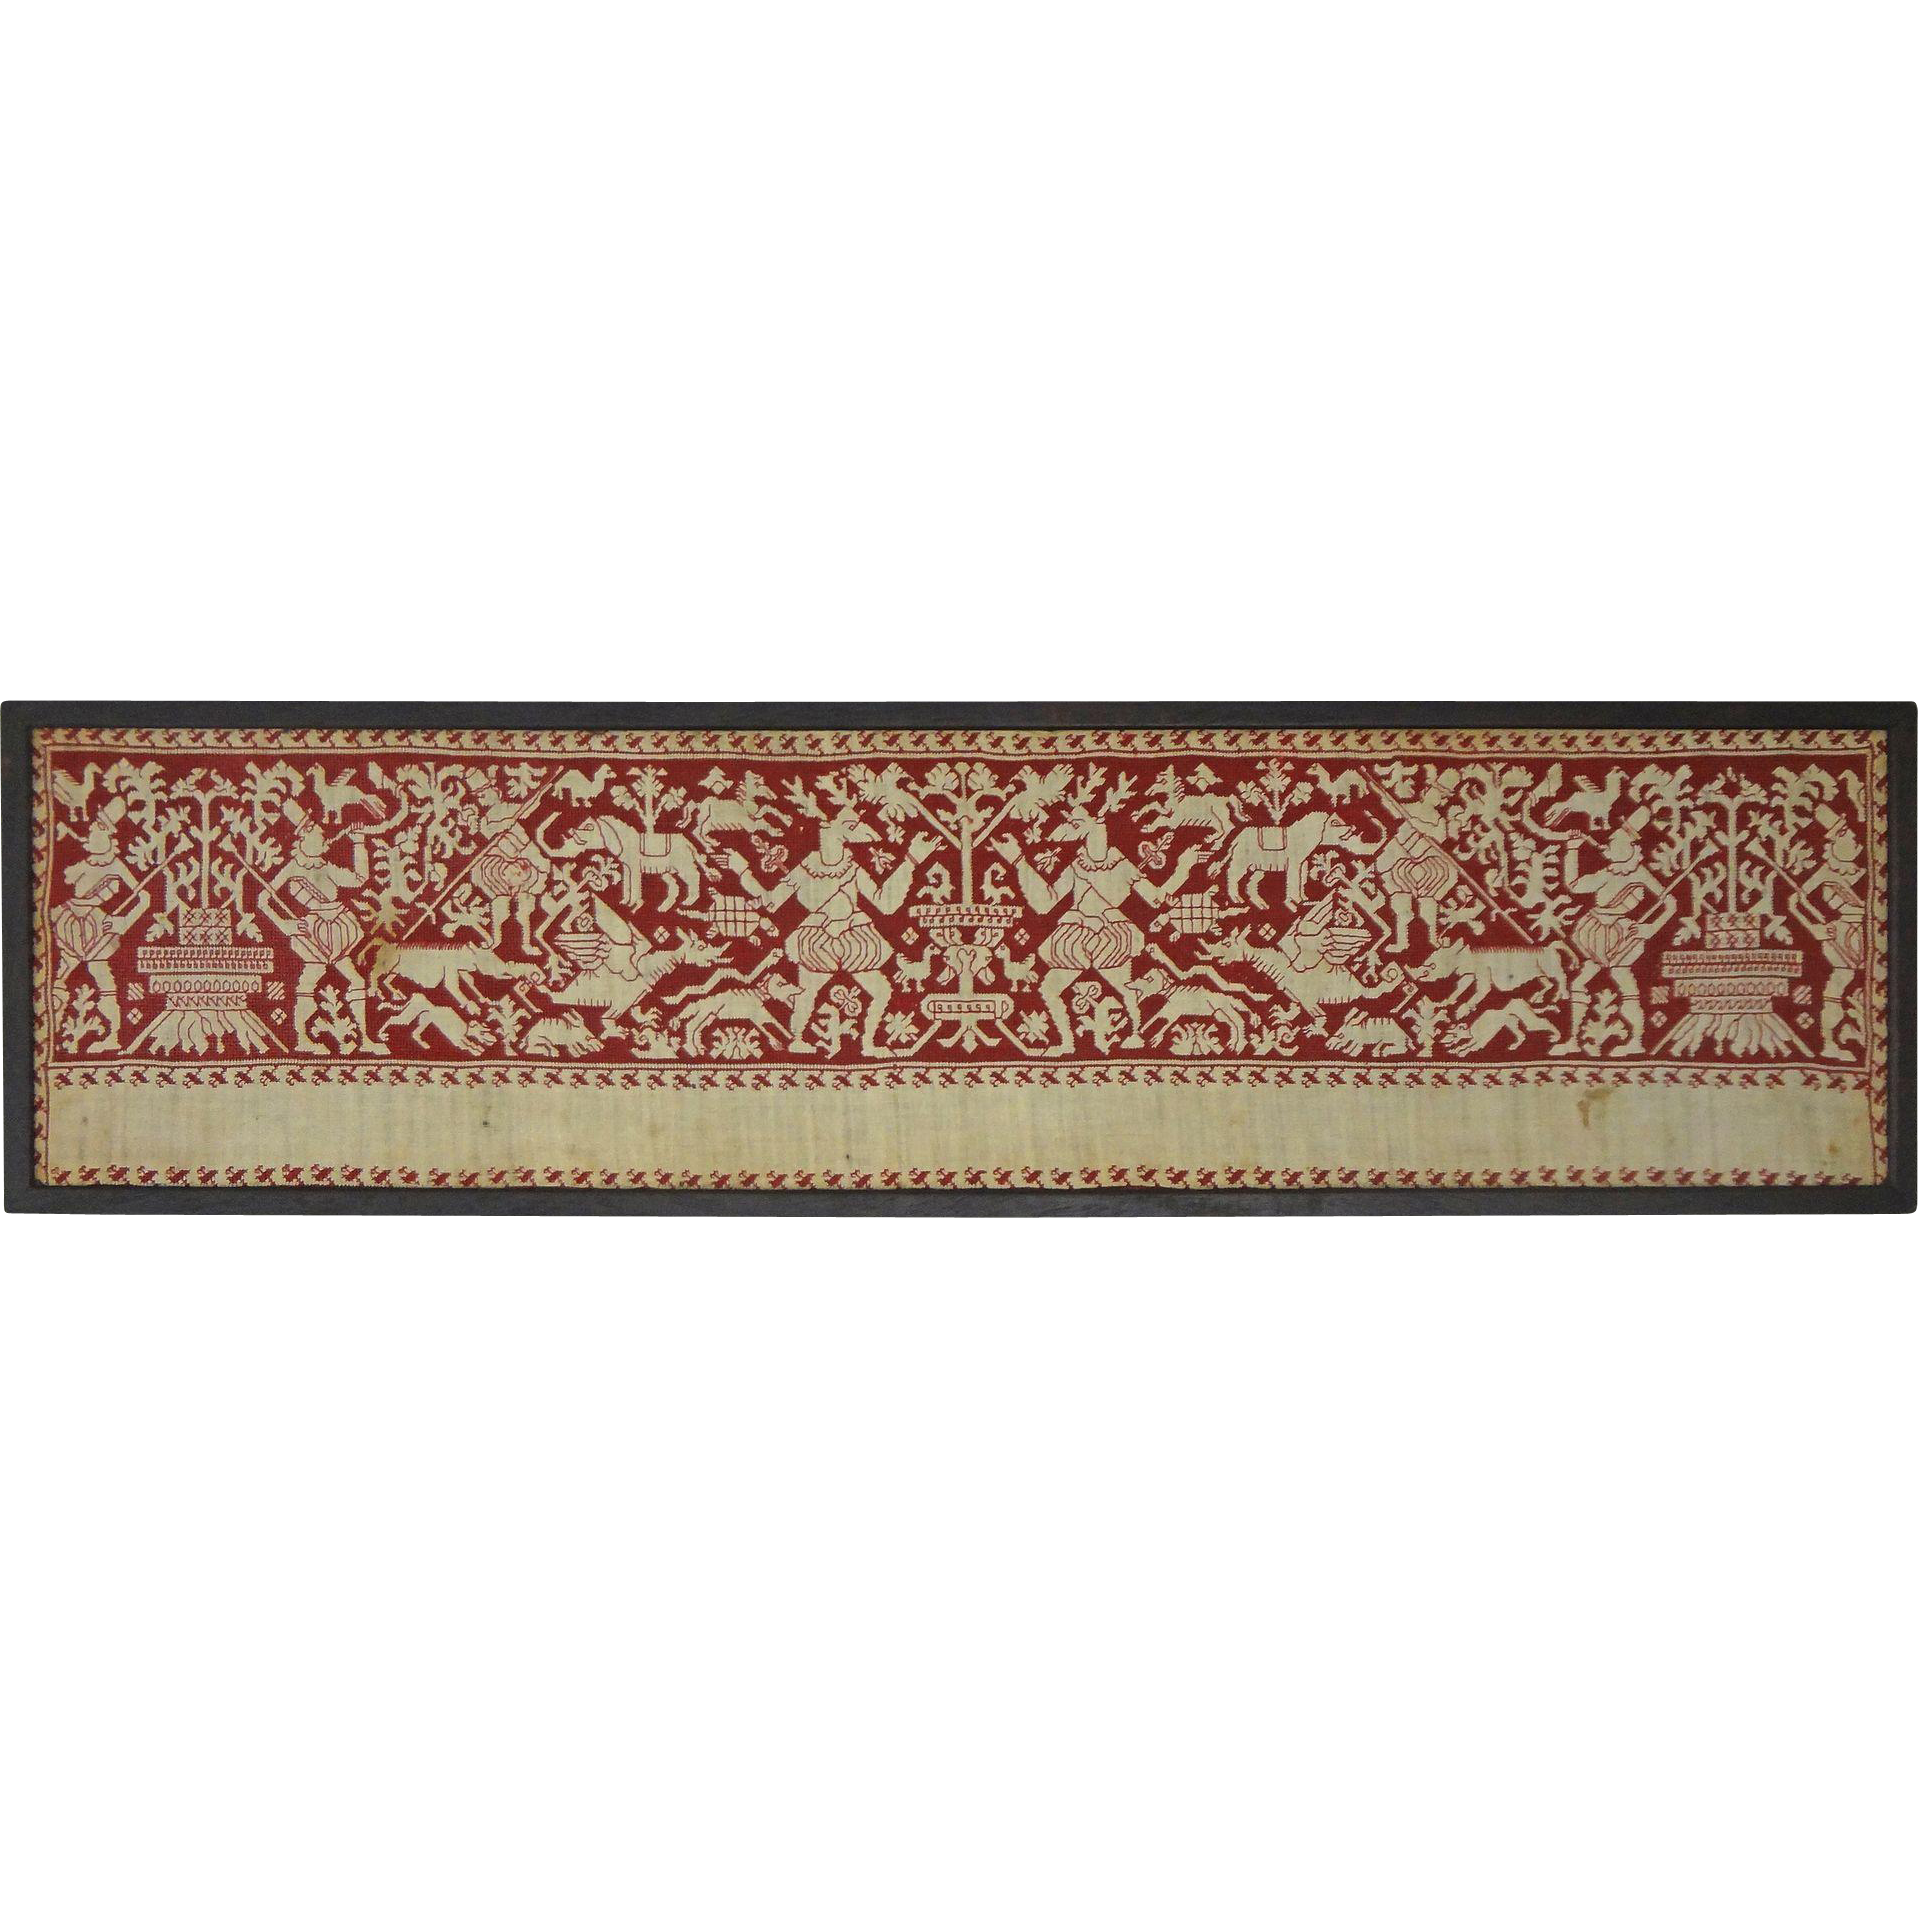 Italian Renaissance Embroidery Panel Valance Border Red Silk Thread on Linen  - circa 17th Century, Italy